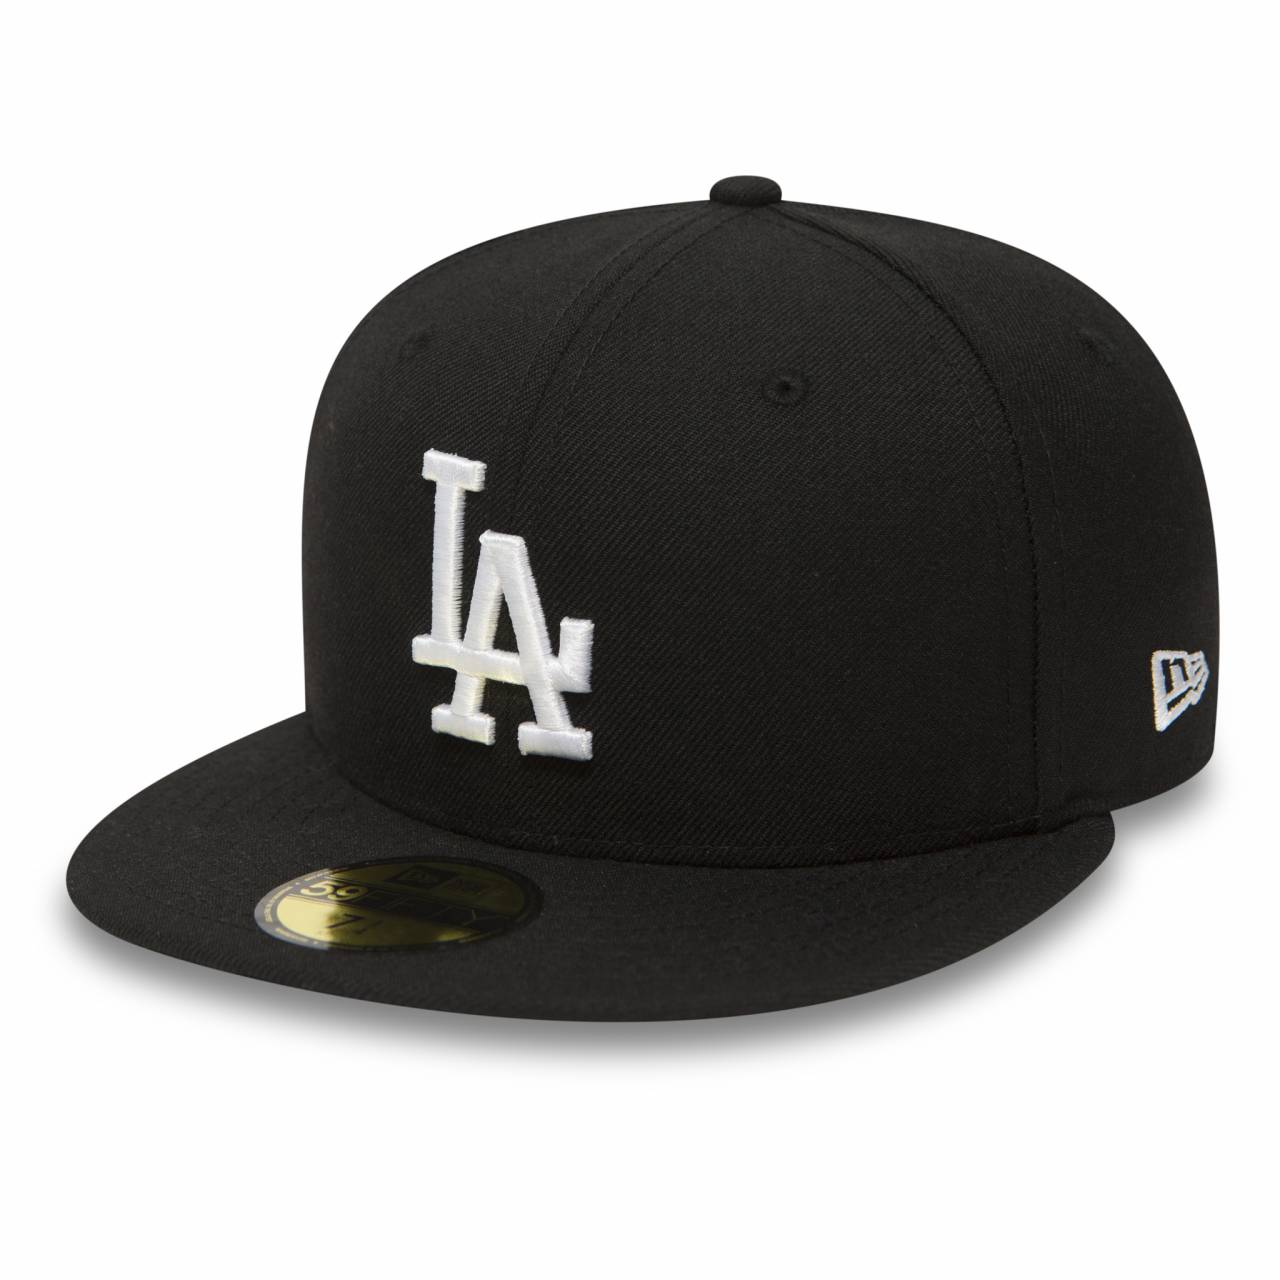 10047495 59FIFTY LOS ANGELES DODGERS BLACK/WHITE FITTED CAP